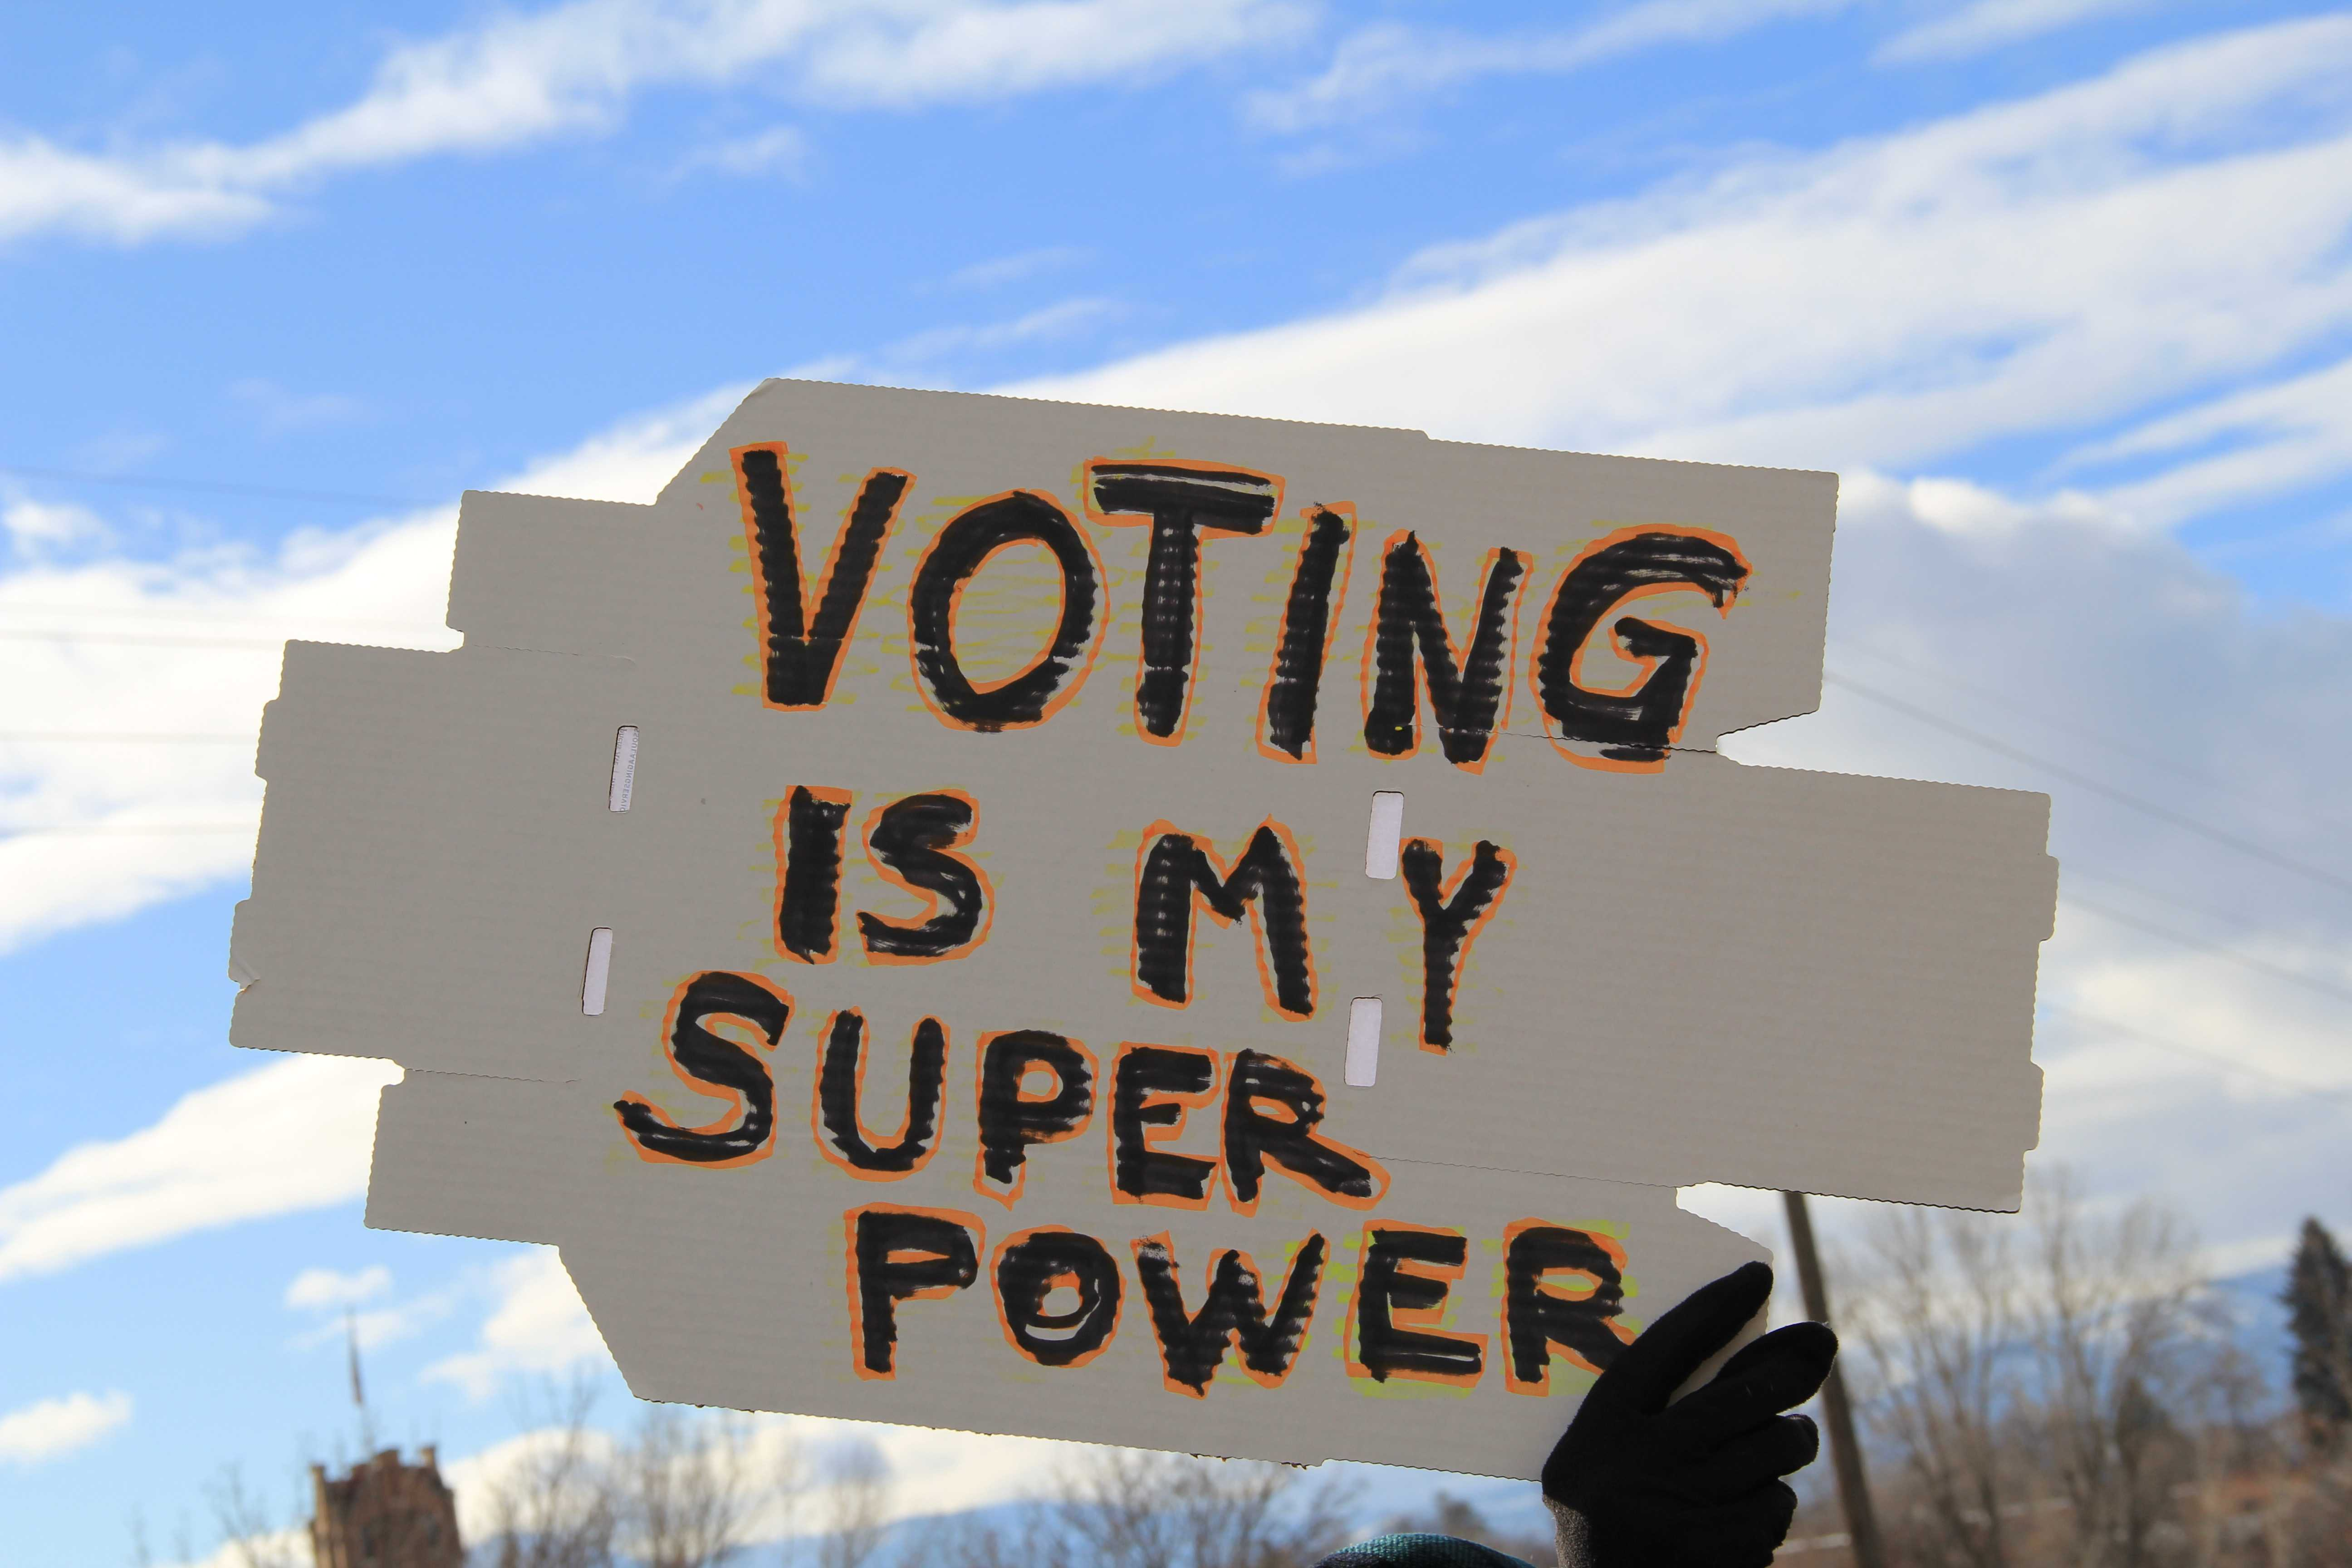 Opinion: I know that voting doesn't make sense; here's why I do it anyway